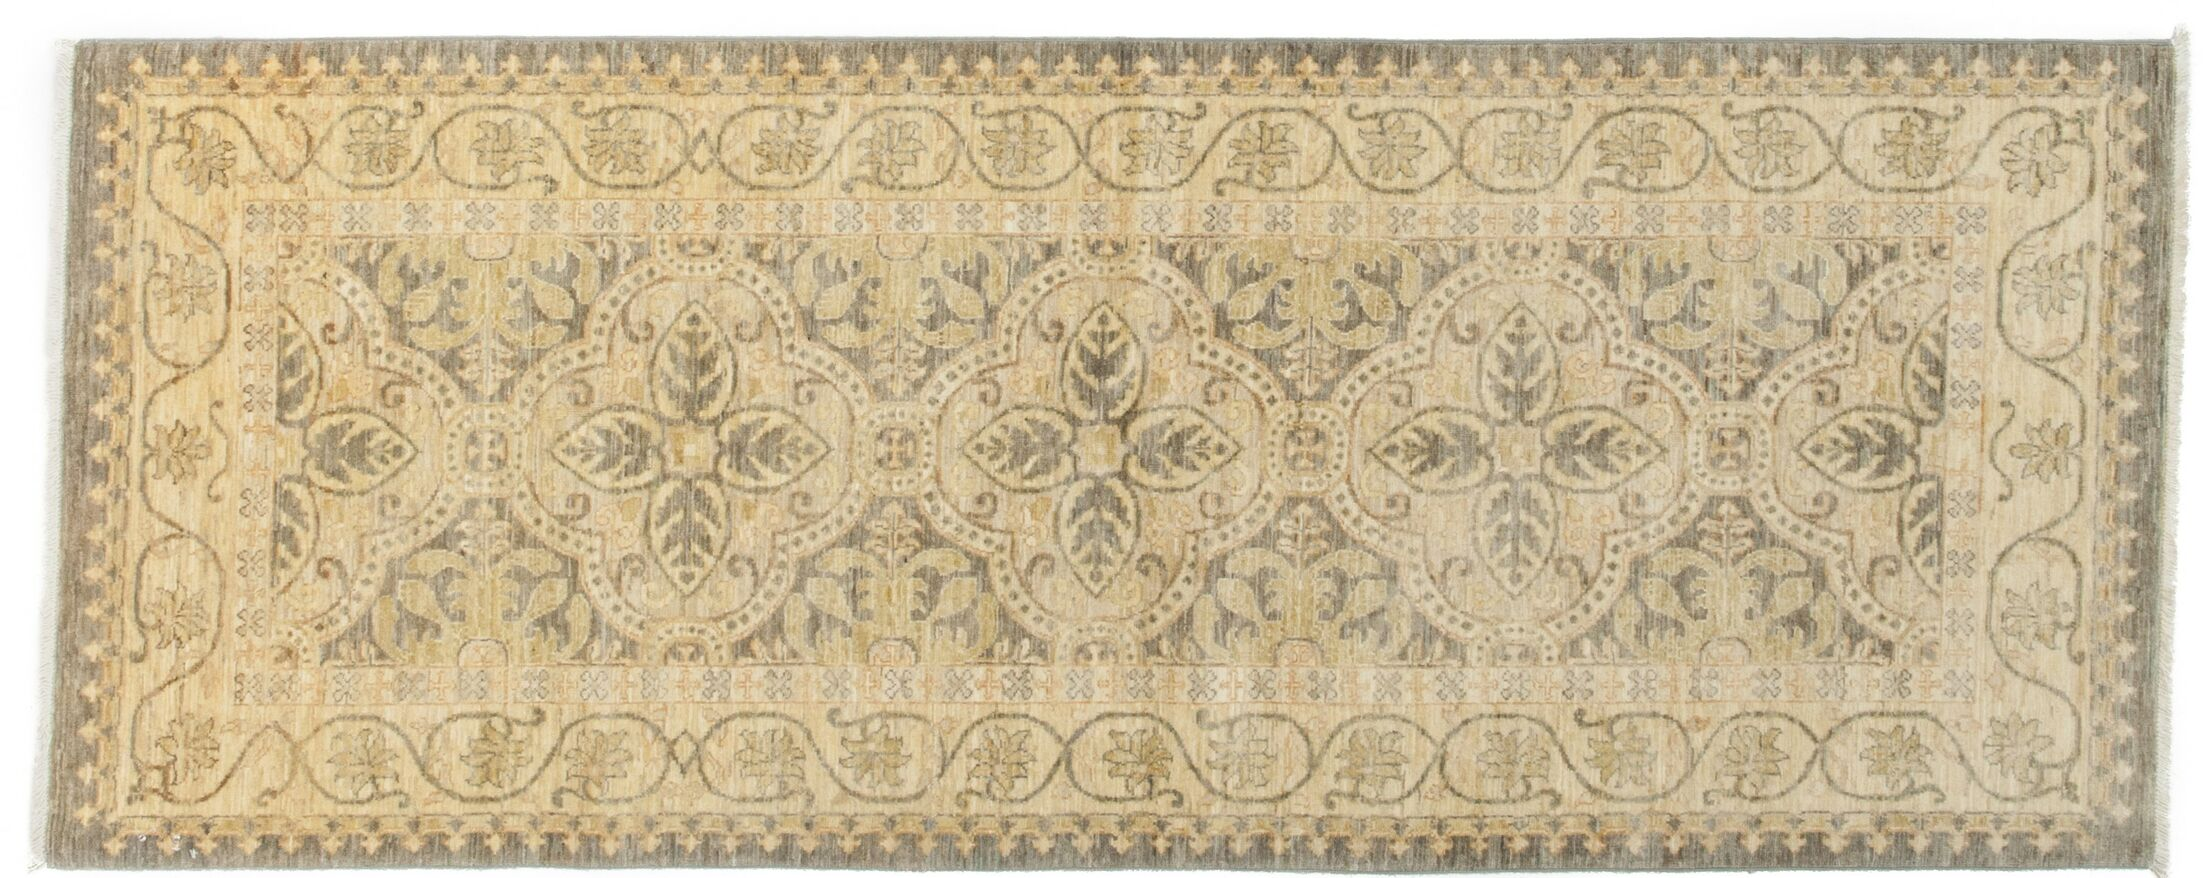 One-of-a-Kind Eclectic Hand-Knotted Beige Area Rug